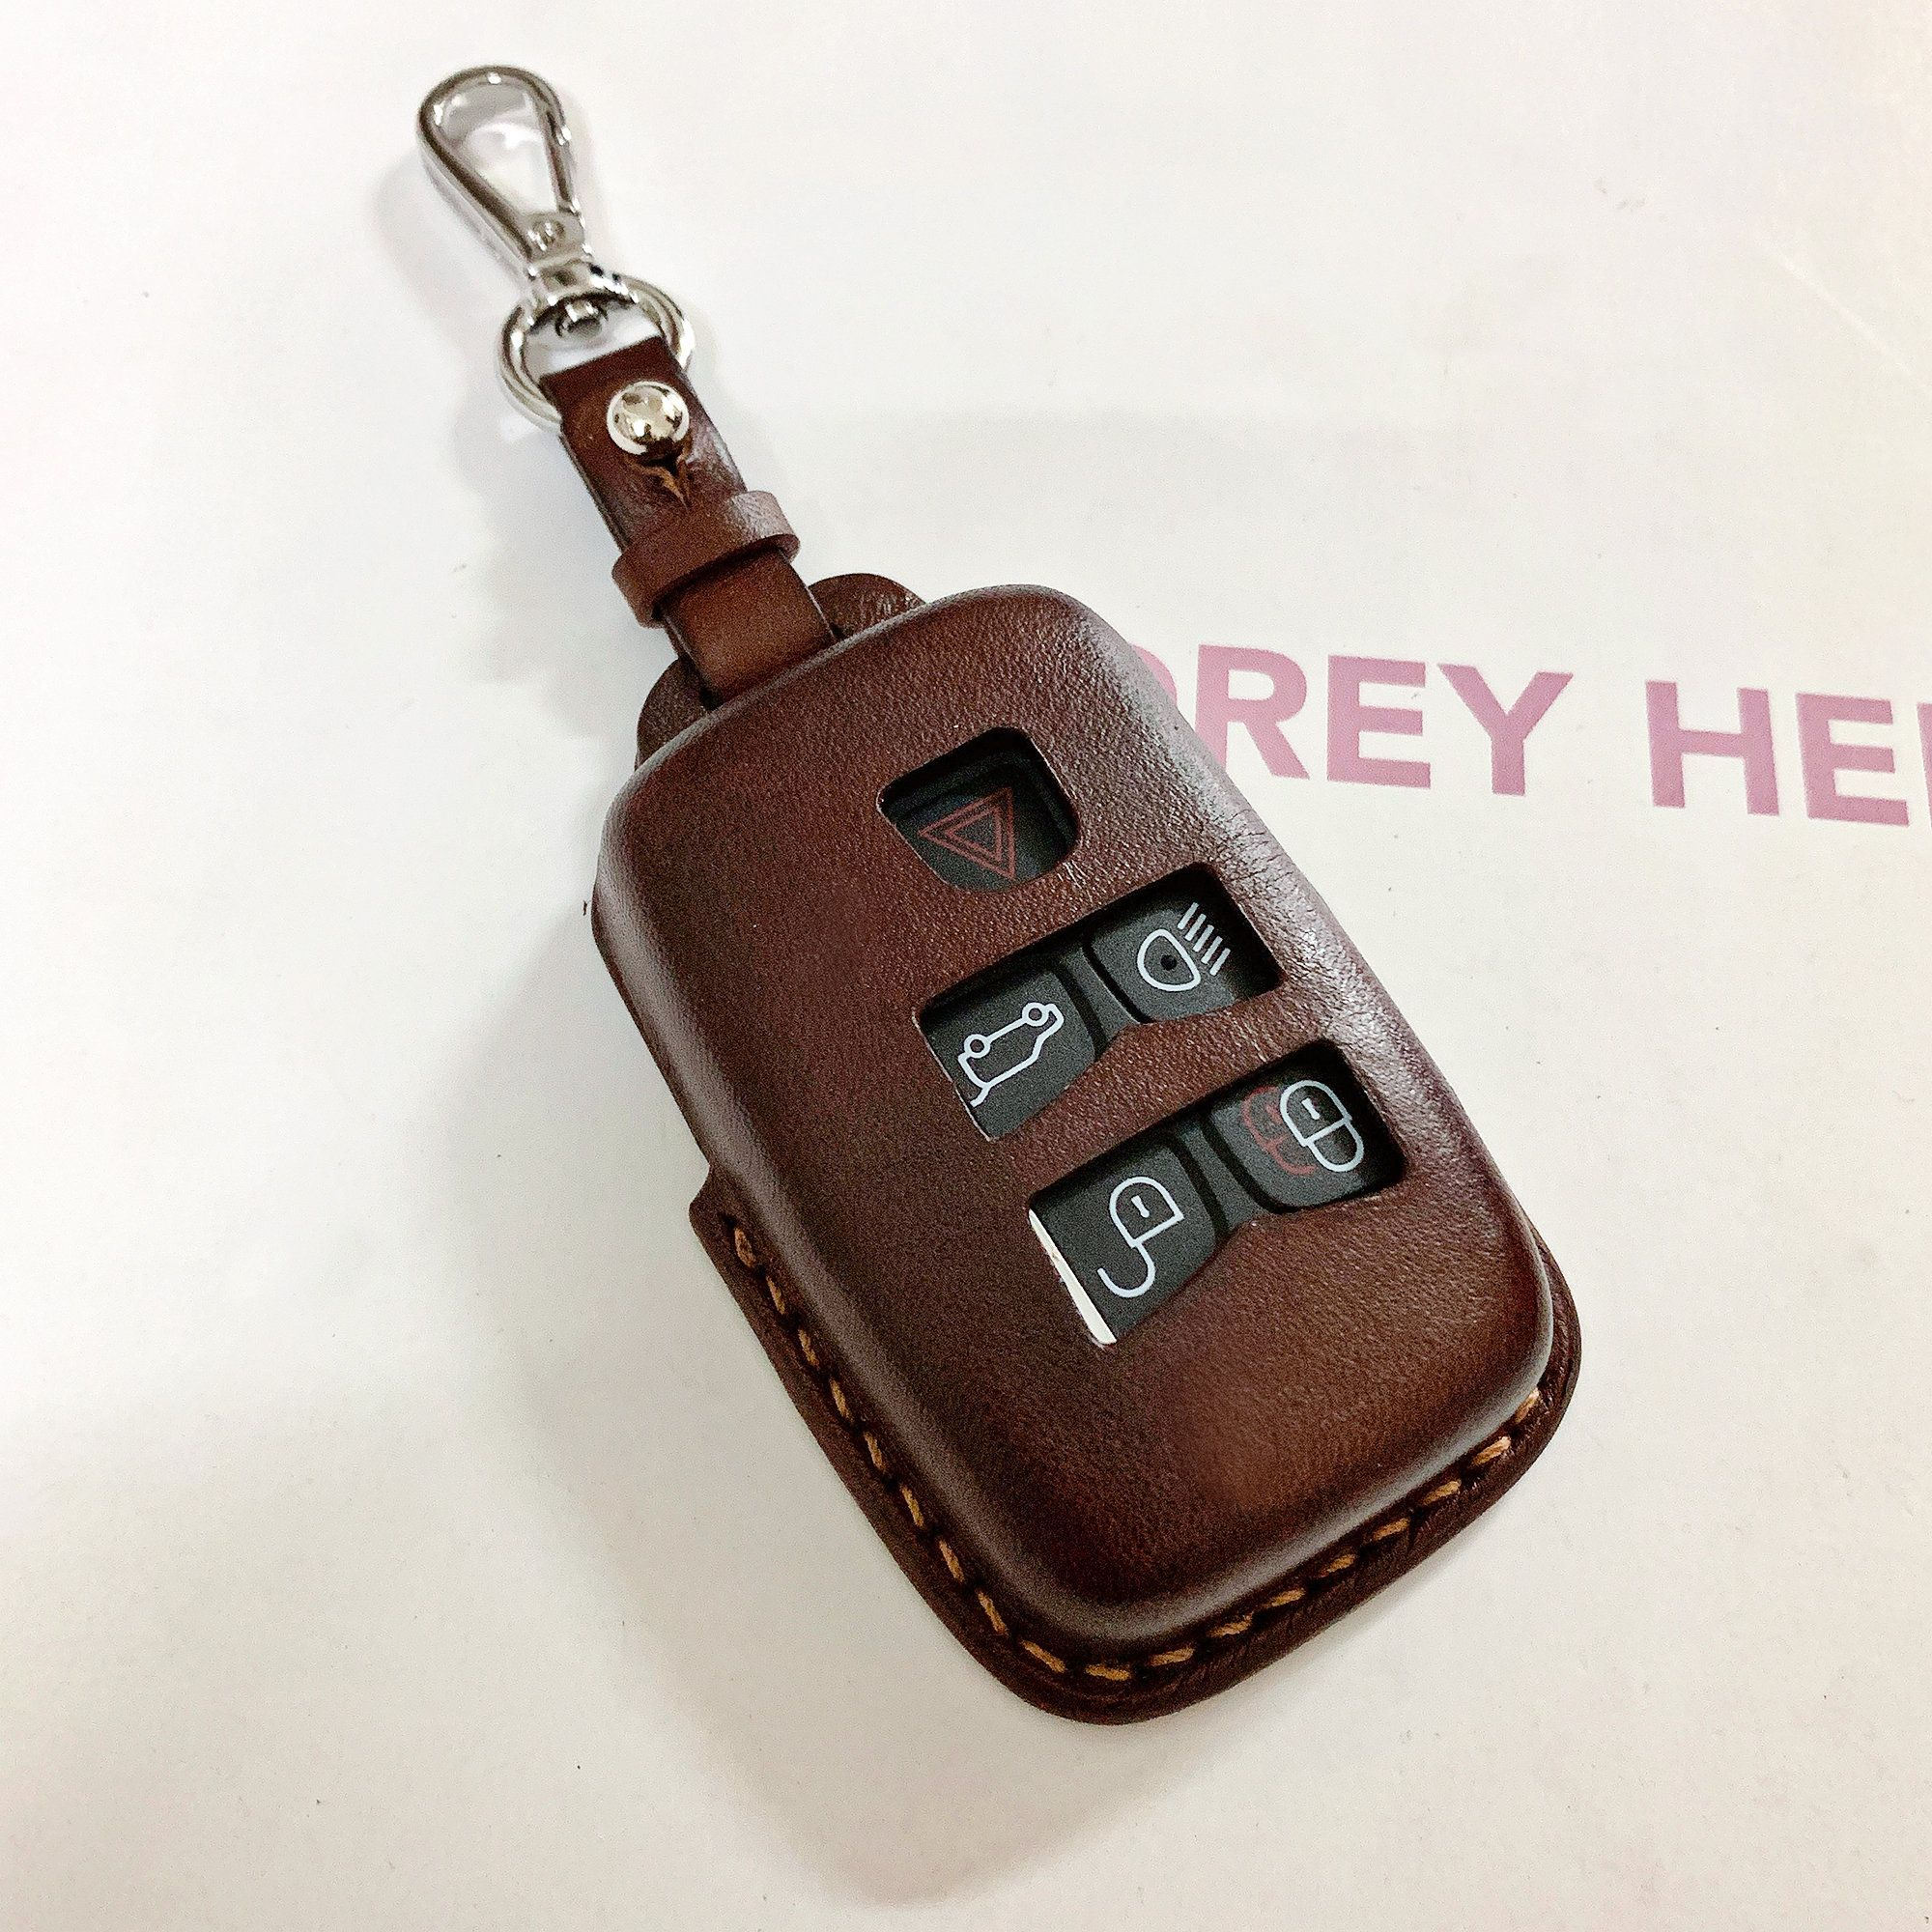 Range Rover Key Fob Cover Car Key Case Handmade Brown Leather Car Key Sleeve Car Key Case Range Rover Evoque Range Rover Spo Key Case Range Rover Car Keys